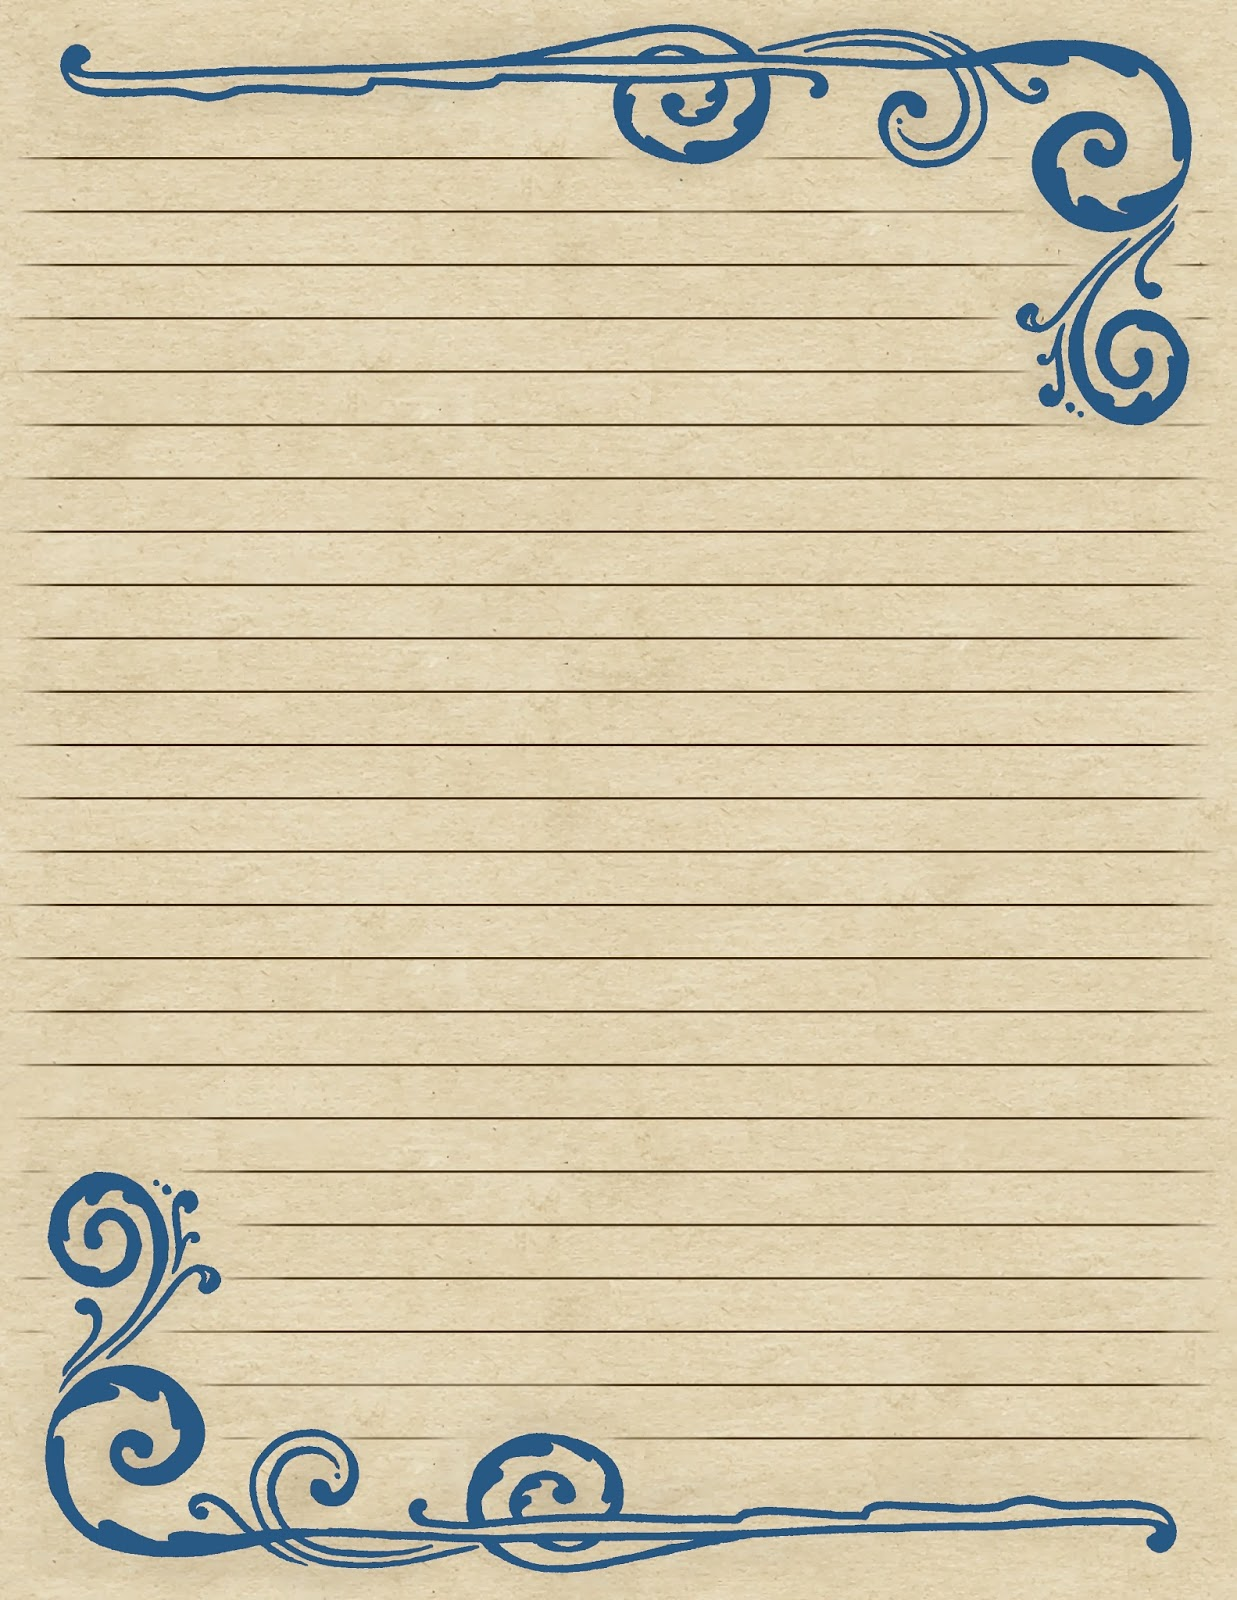 Blank Editable Lined Paper Template Word Pdf Lined Paper